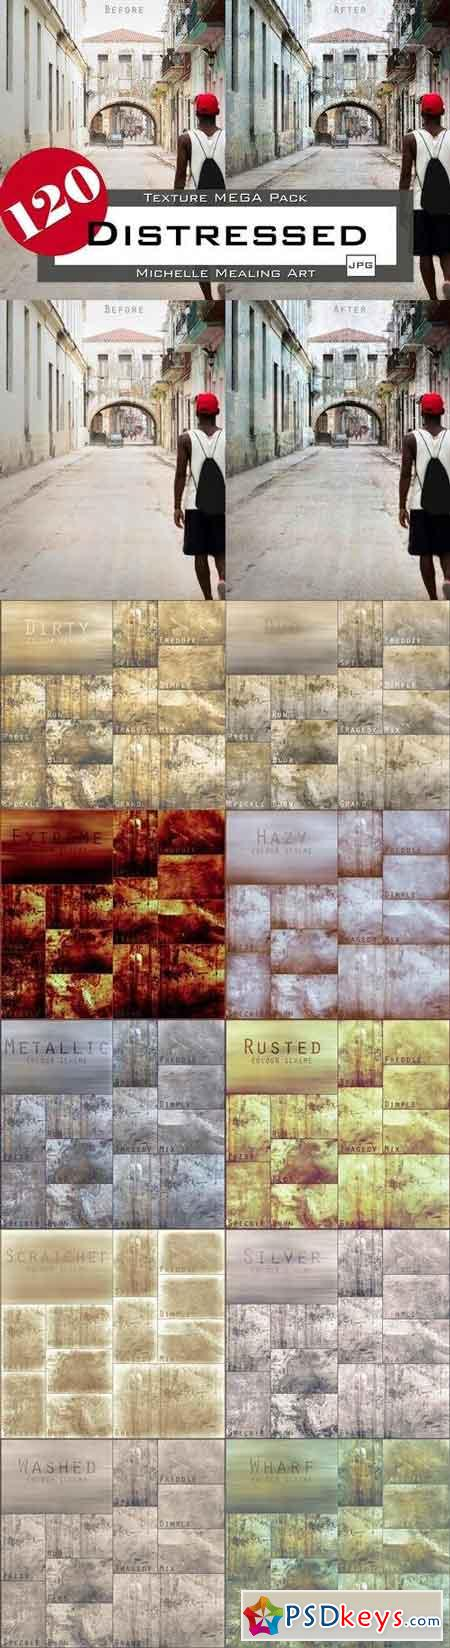 Distressed 120 Texture MEGA Pack 2058604